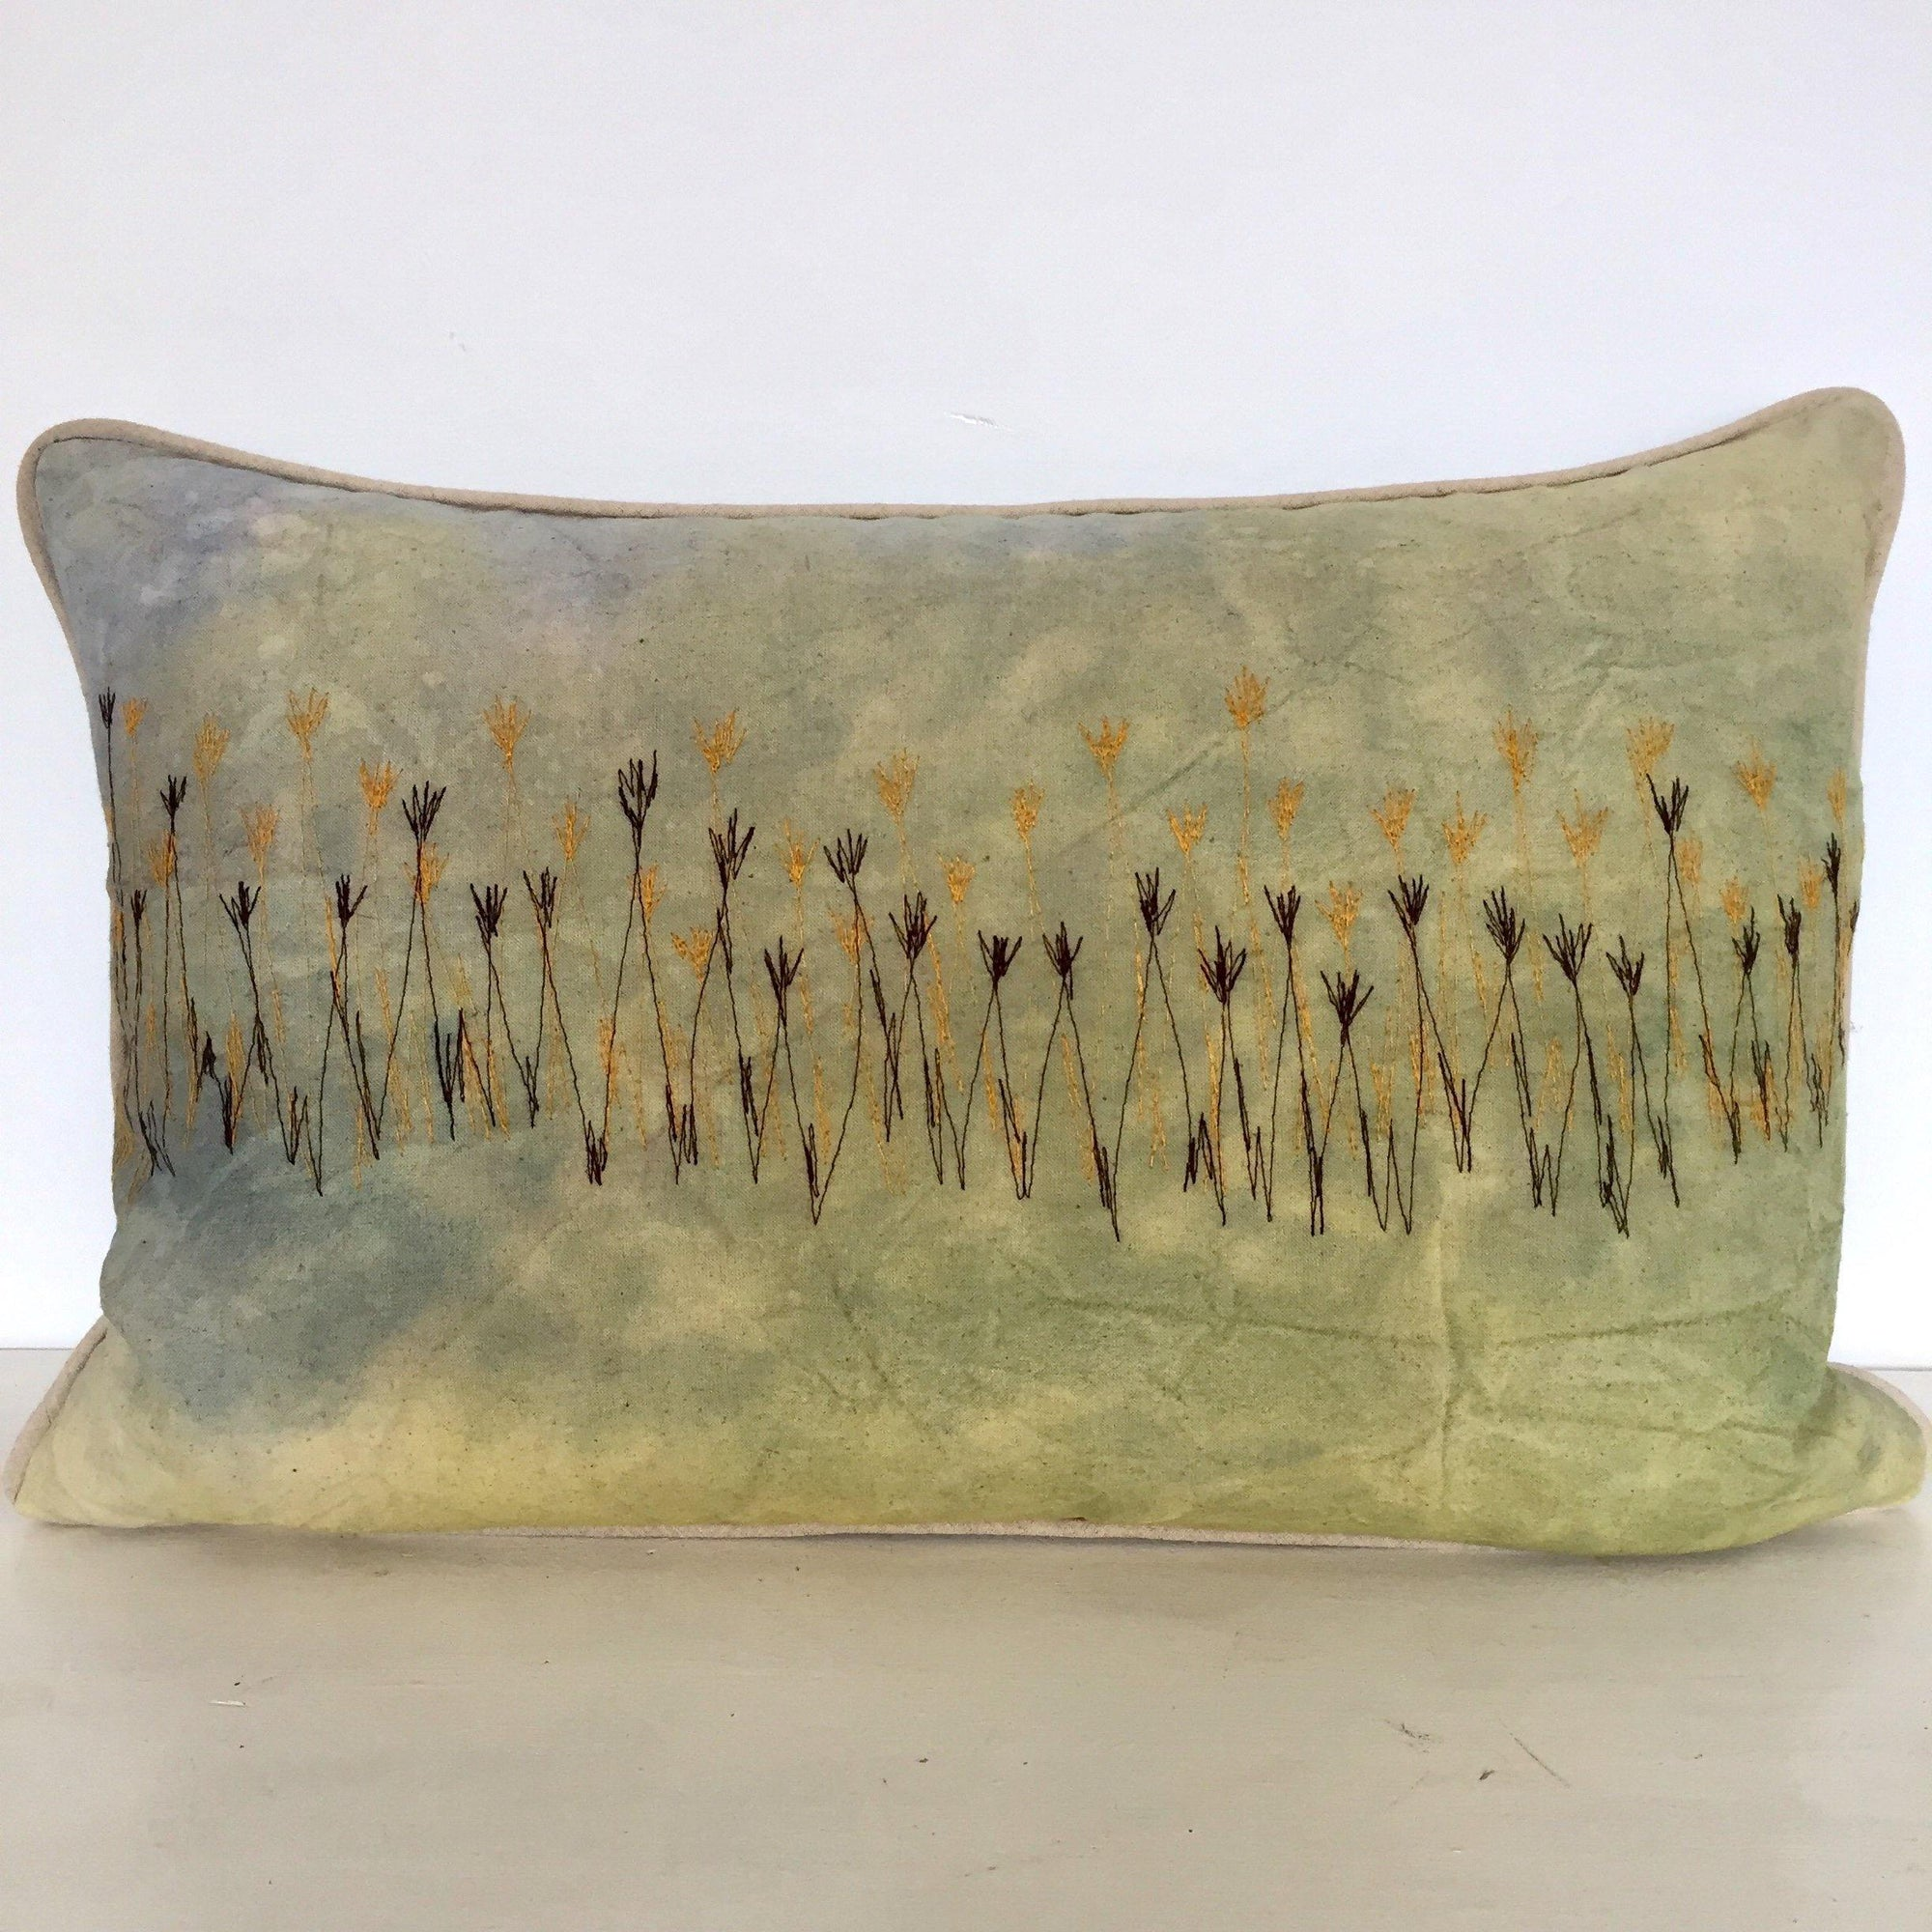 Misty Morning Wetlands Cushion Cover (Aqua Blue VELVET back)